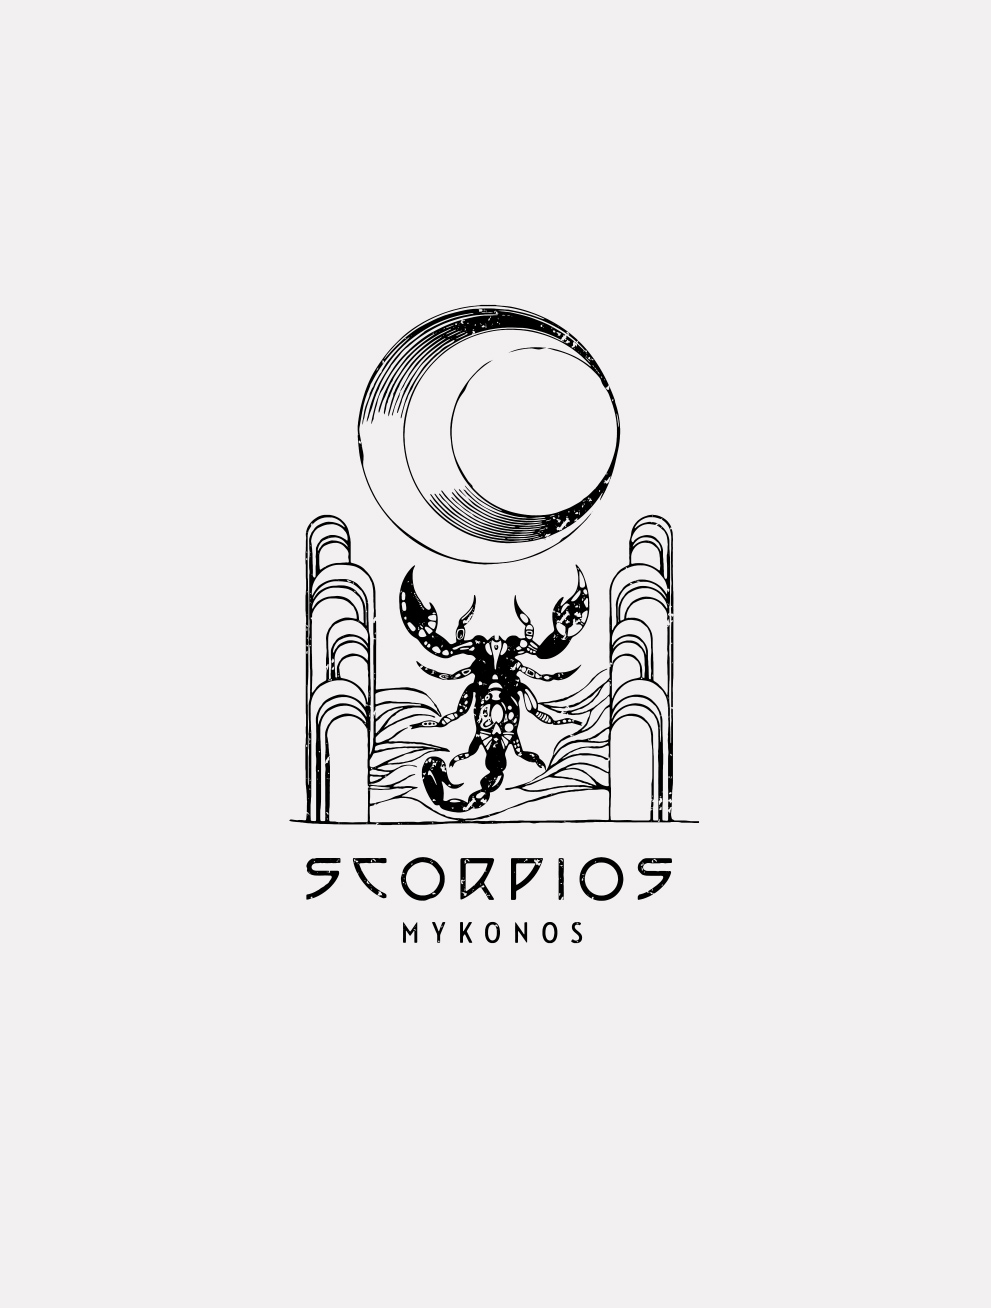 Iconography - In envisioning Scorpios, its makers turned the symbols of ancient ritual and occultism, finding its key iconography—as well as its original logo—in